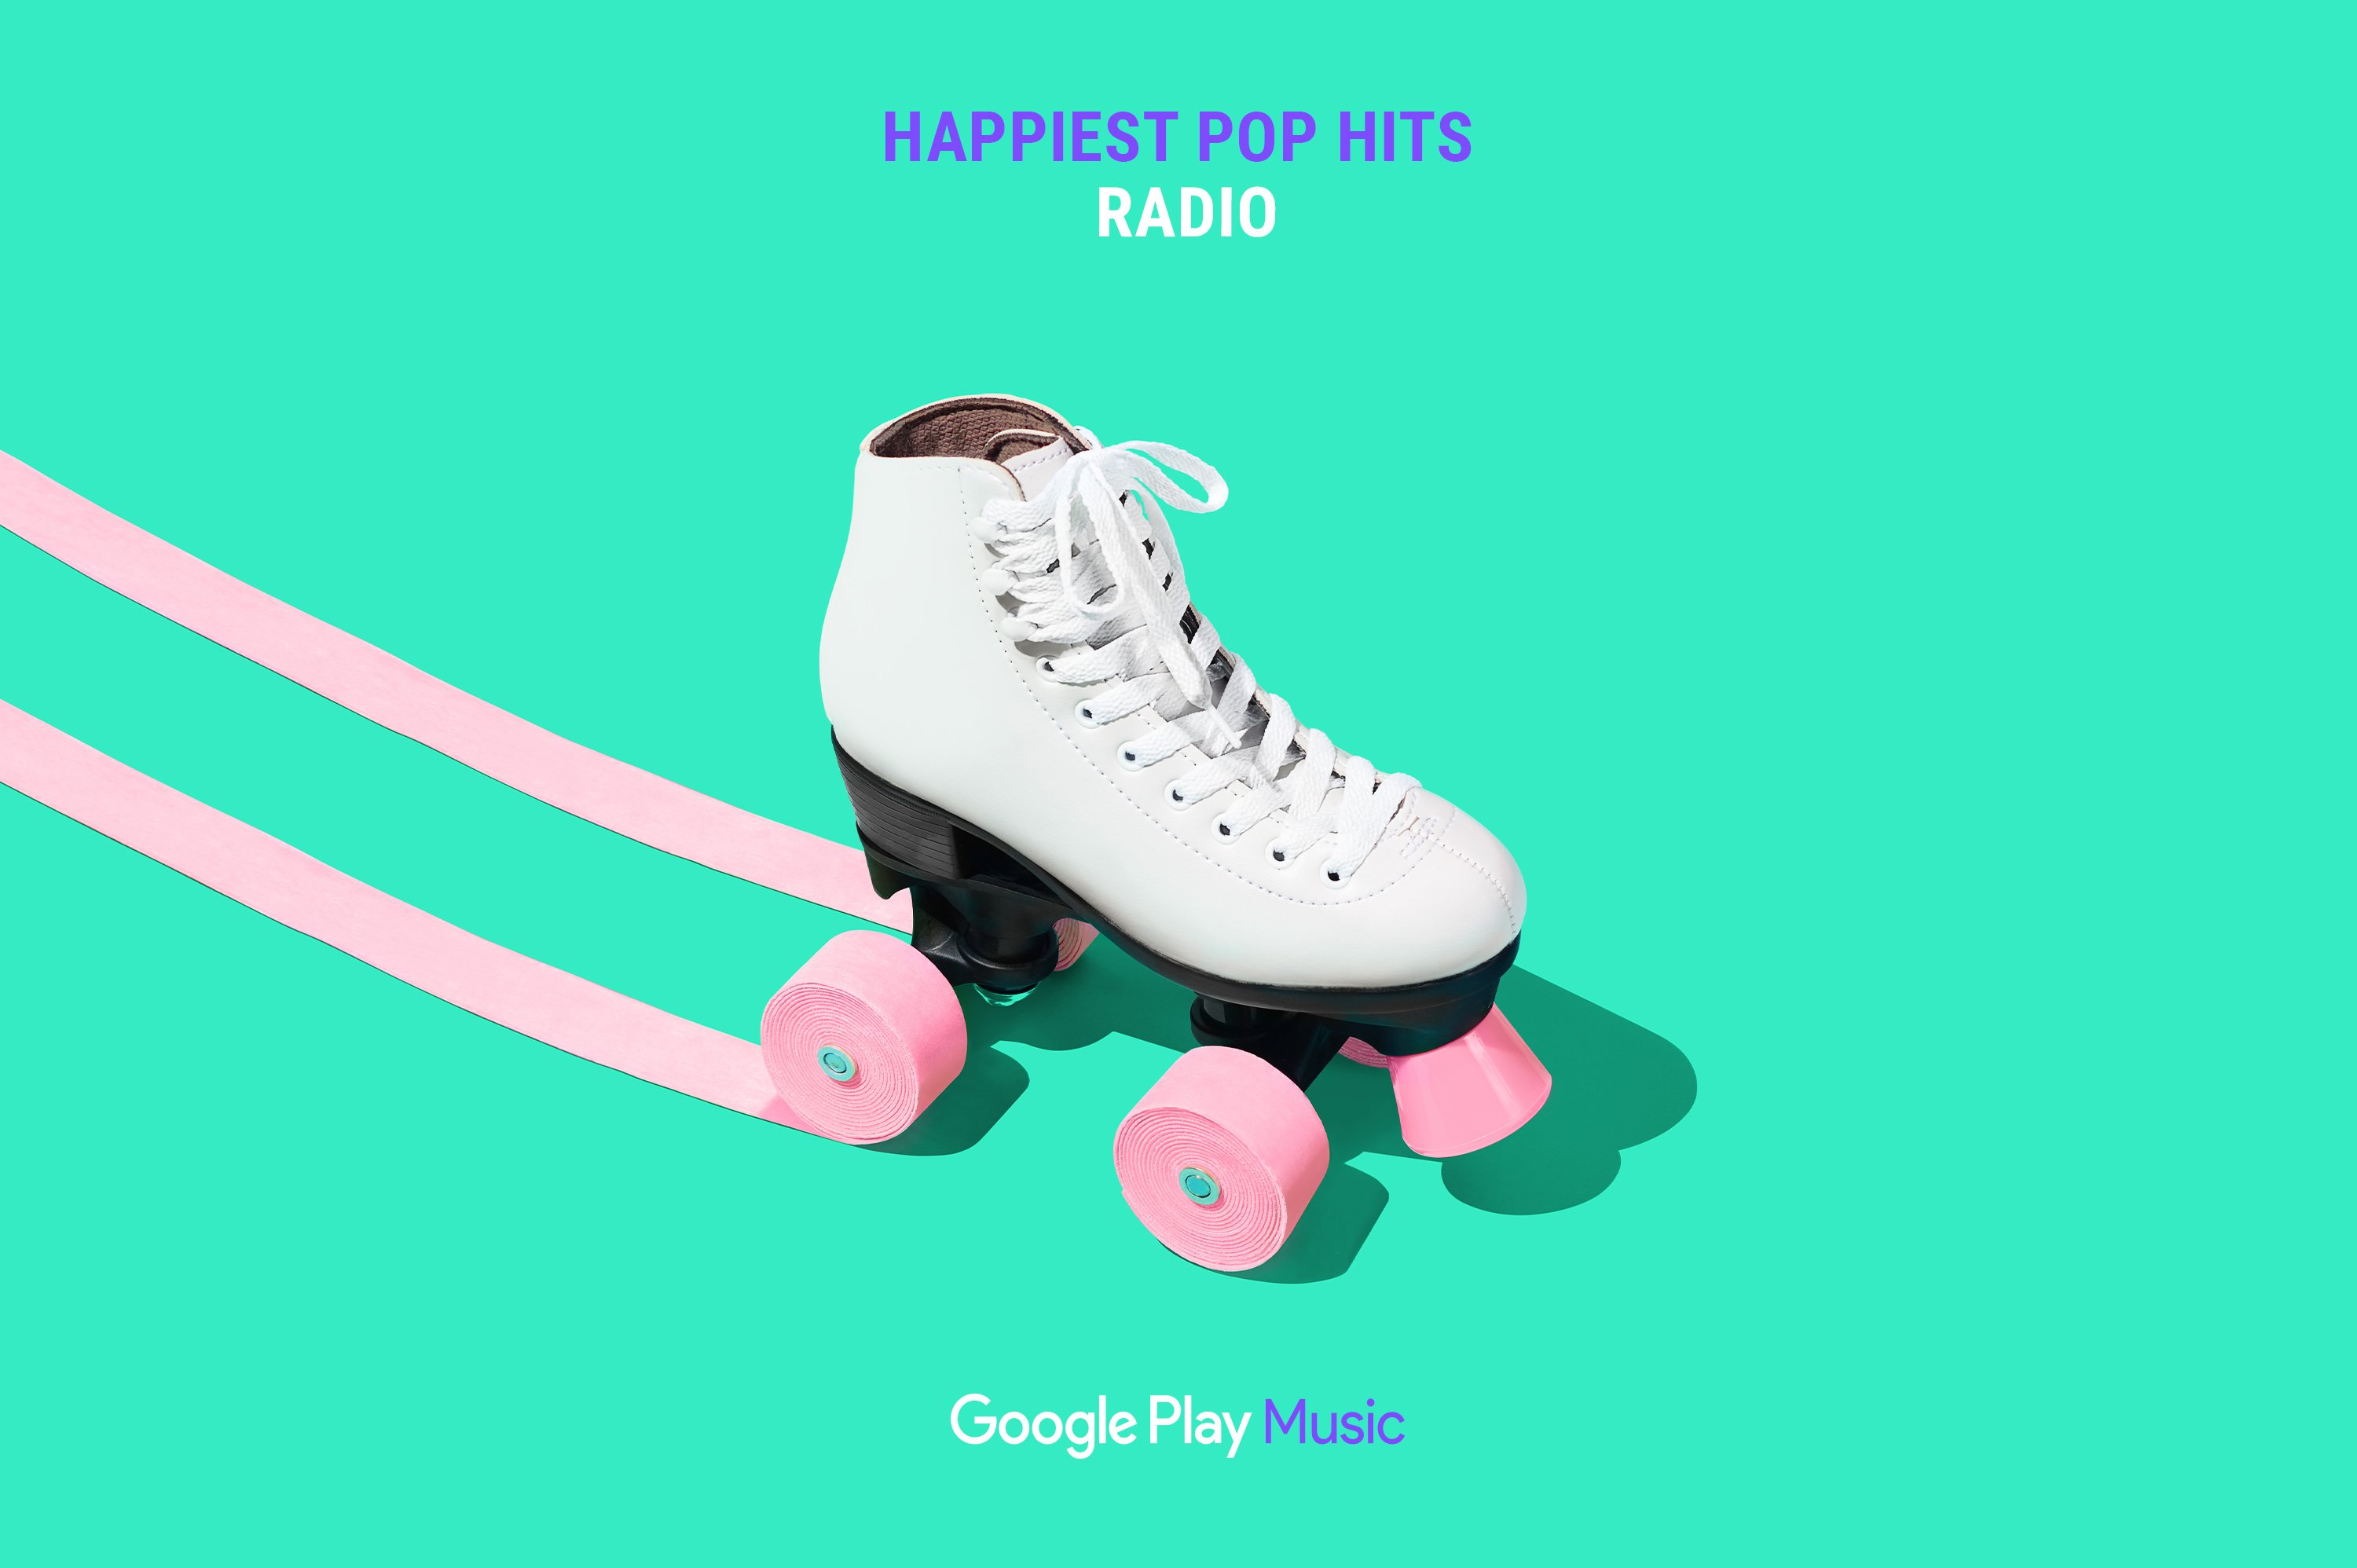 Google Play Music – Happiest Pop Hits Radio ad featuring roller skate with bubble gum tape wheels. Campaign concept and Art Direction by RoAndCo